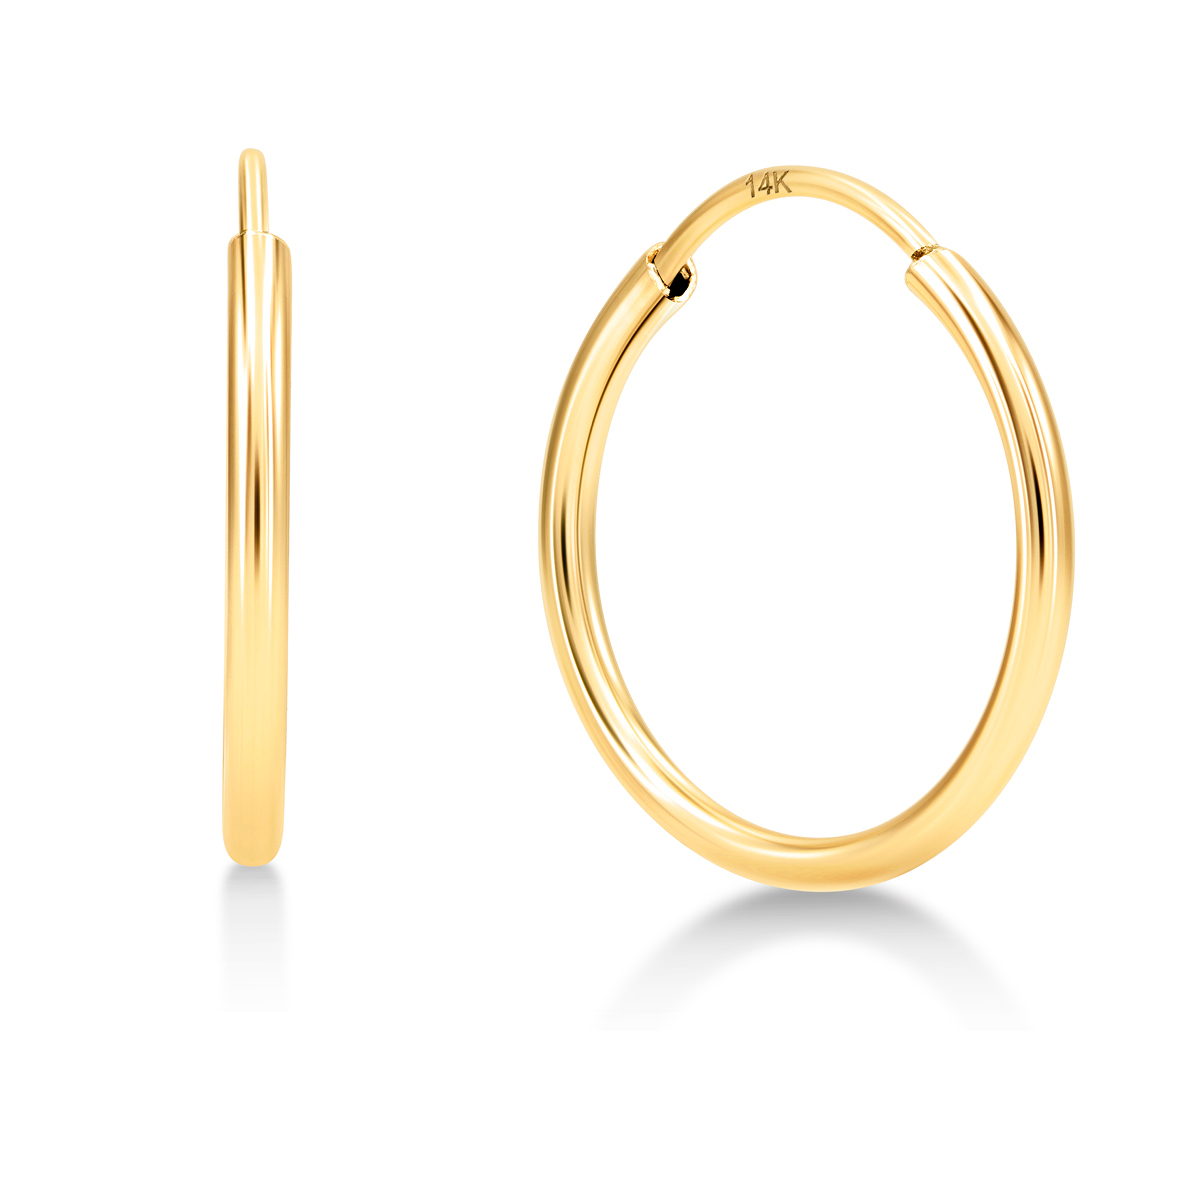 14k Yellow Gold Small Thin Endless Hoop Earrings for Girls